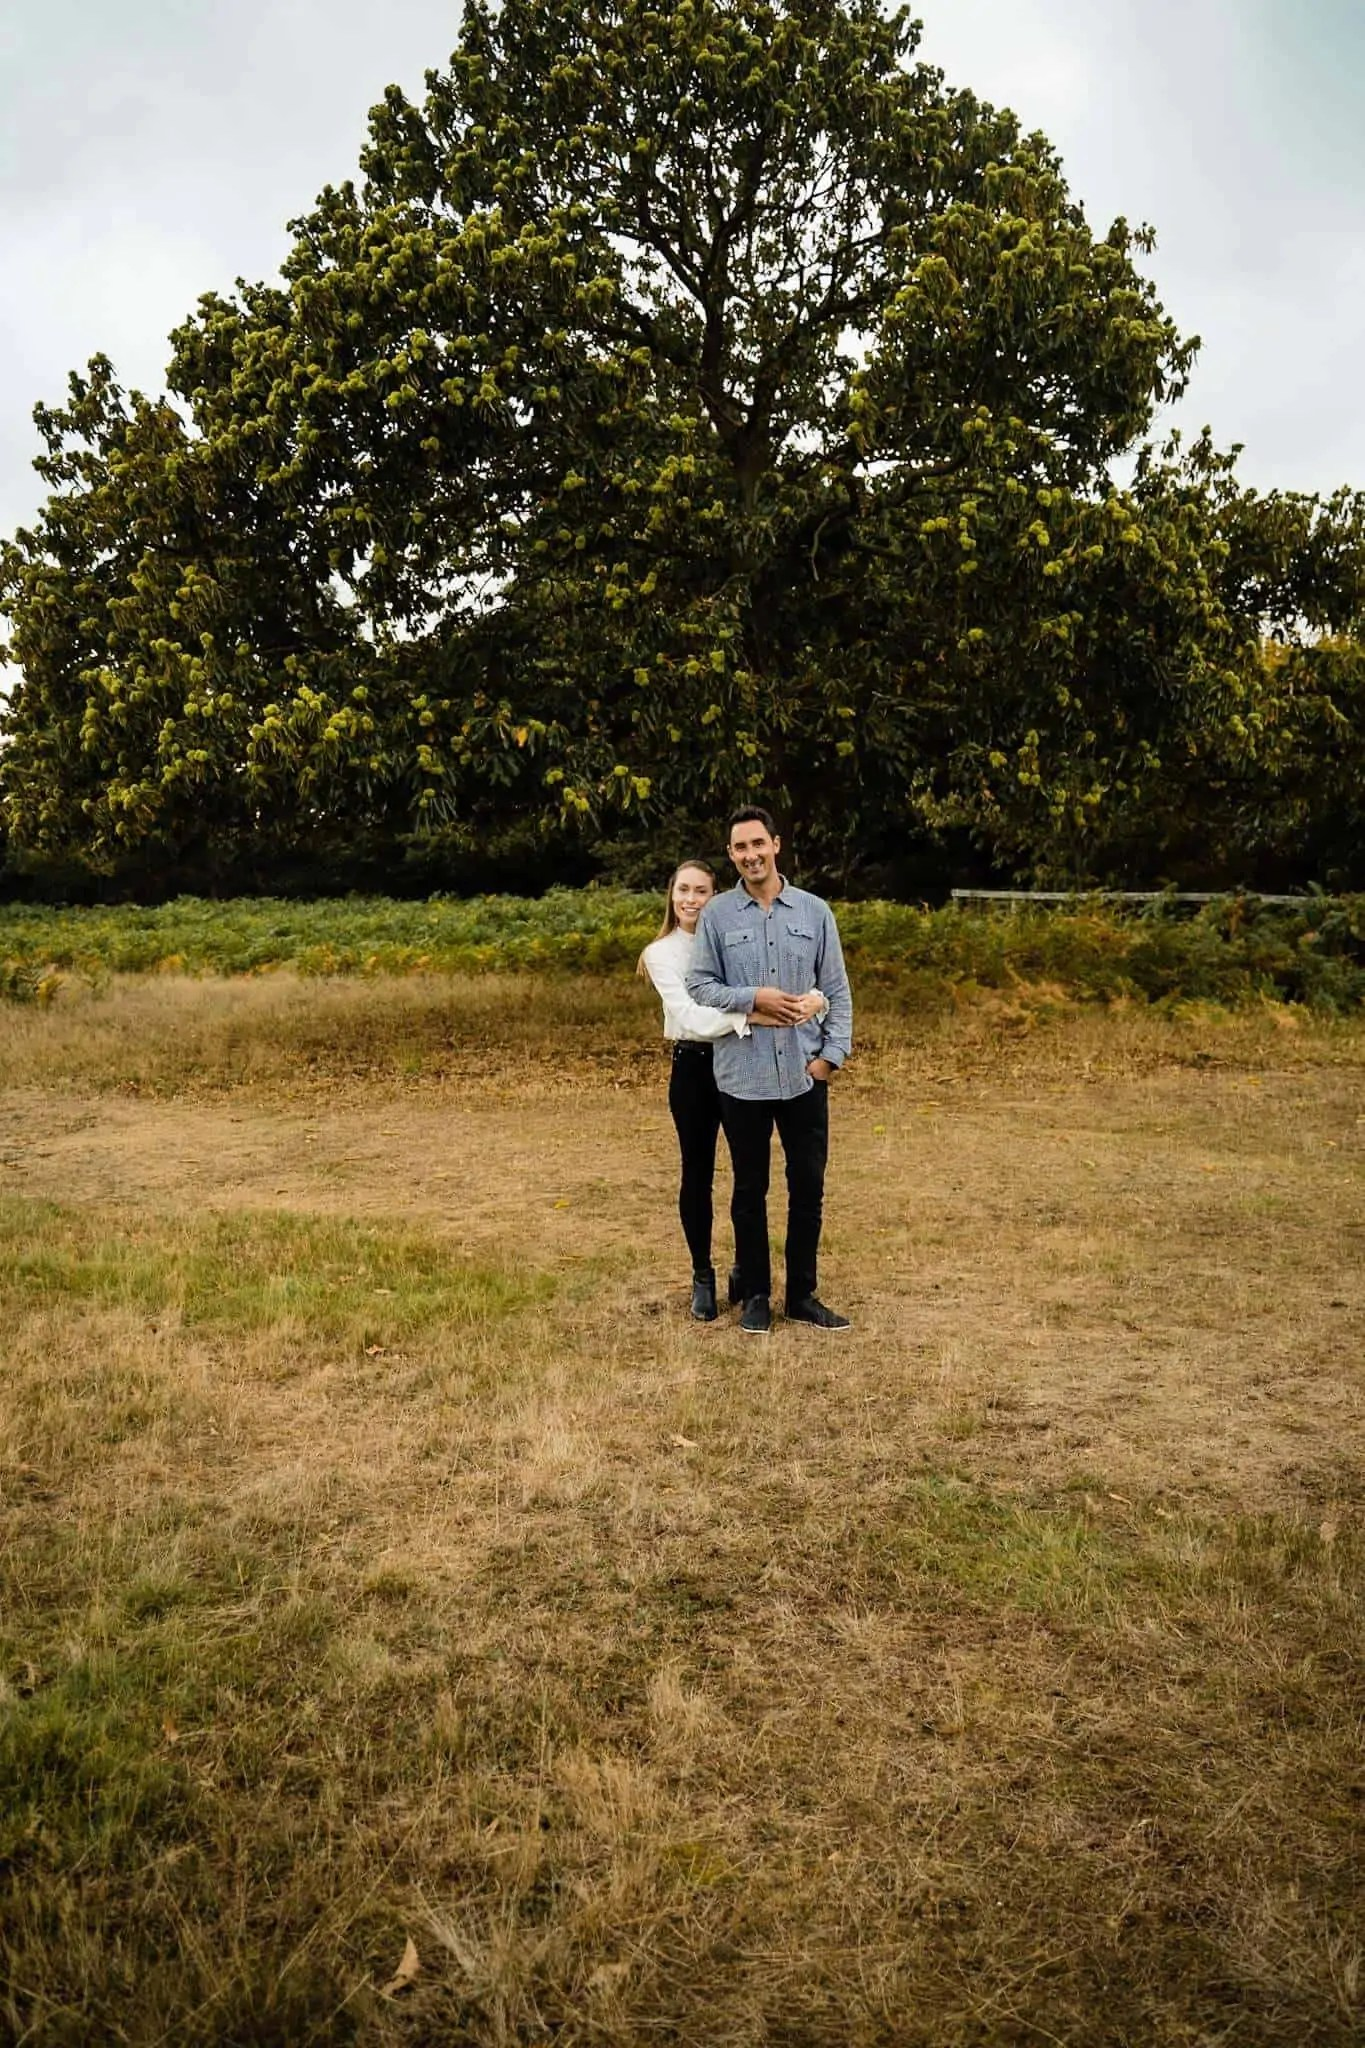 An engaged couple look at the camera during an engagement shoot in Richmond Park